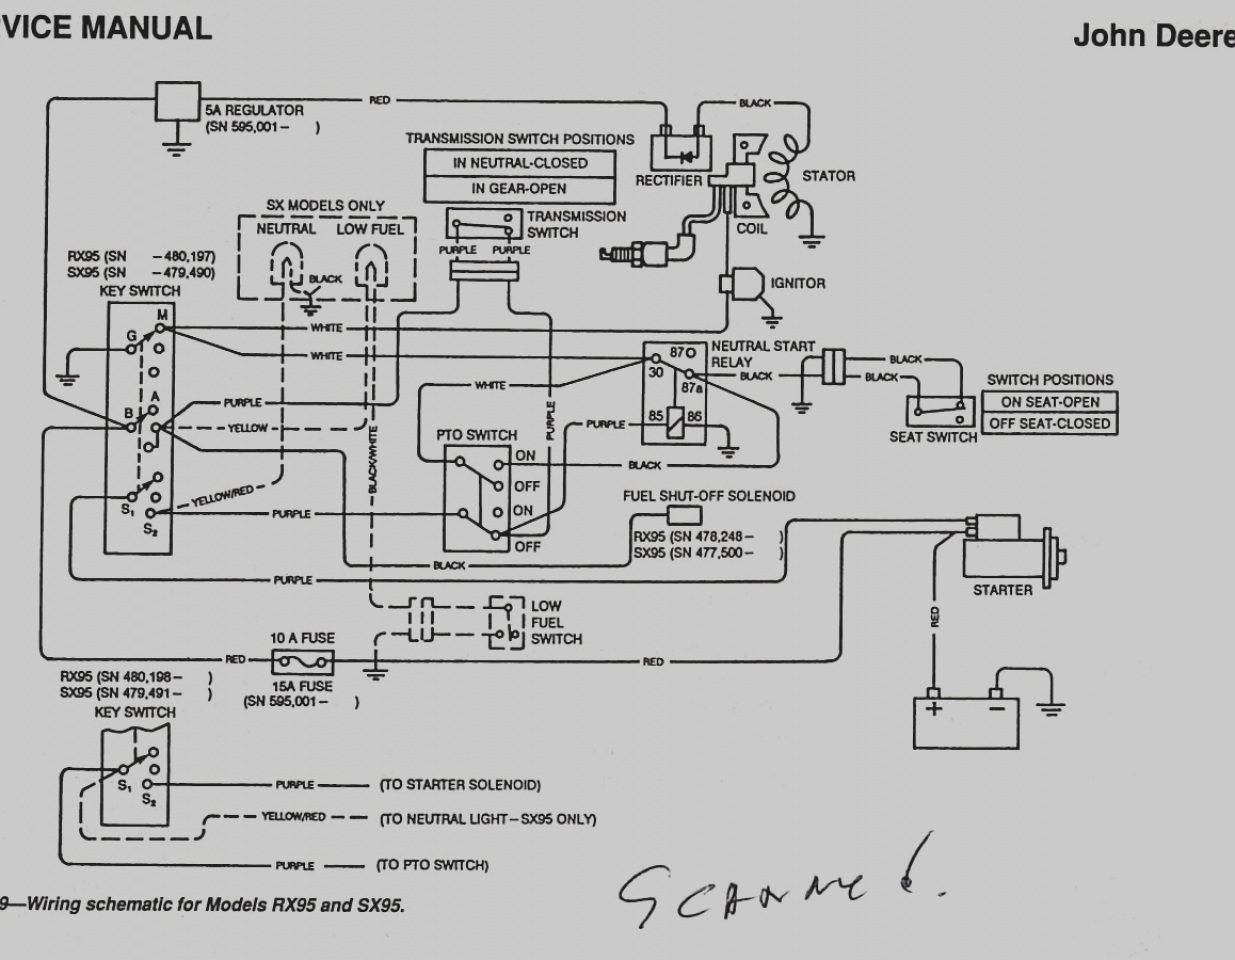 hight resolution of wiring schematics rx95 wiring diagram name rx95 wiring diagram wiring diagram schema rx95 wiring diagram wiring